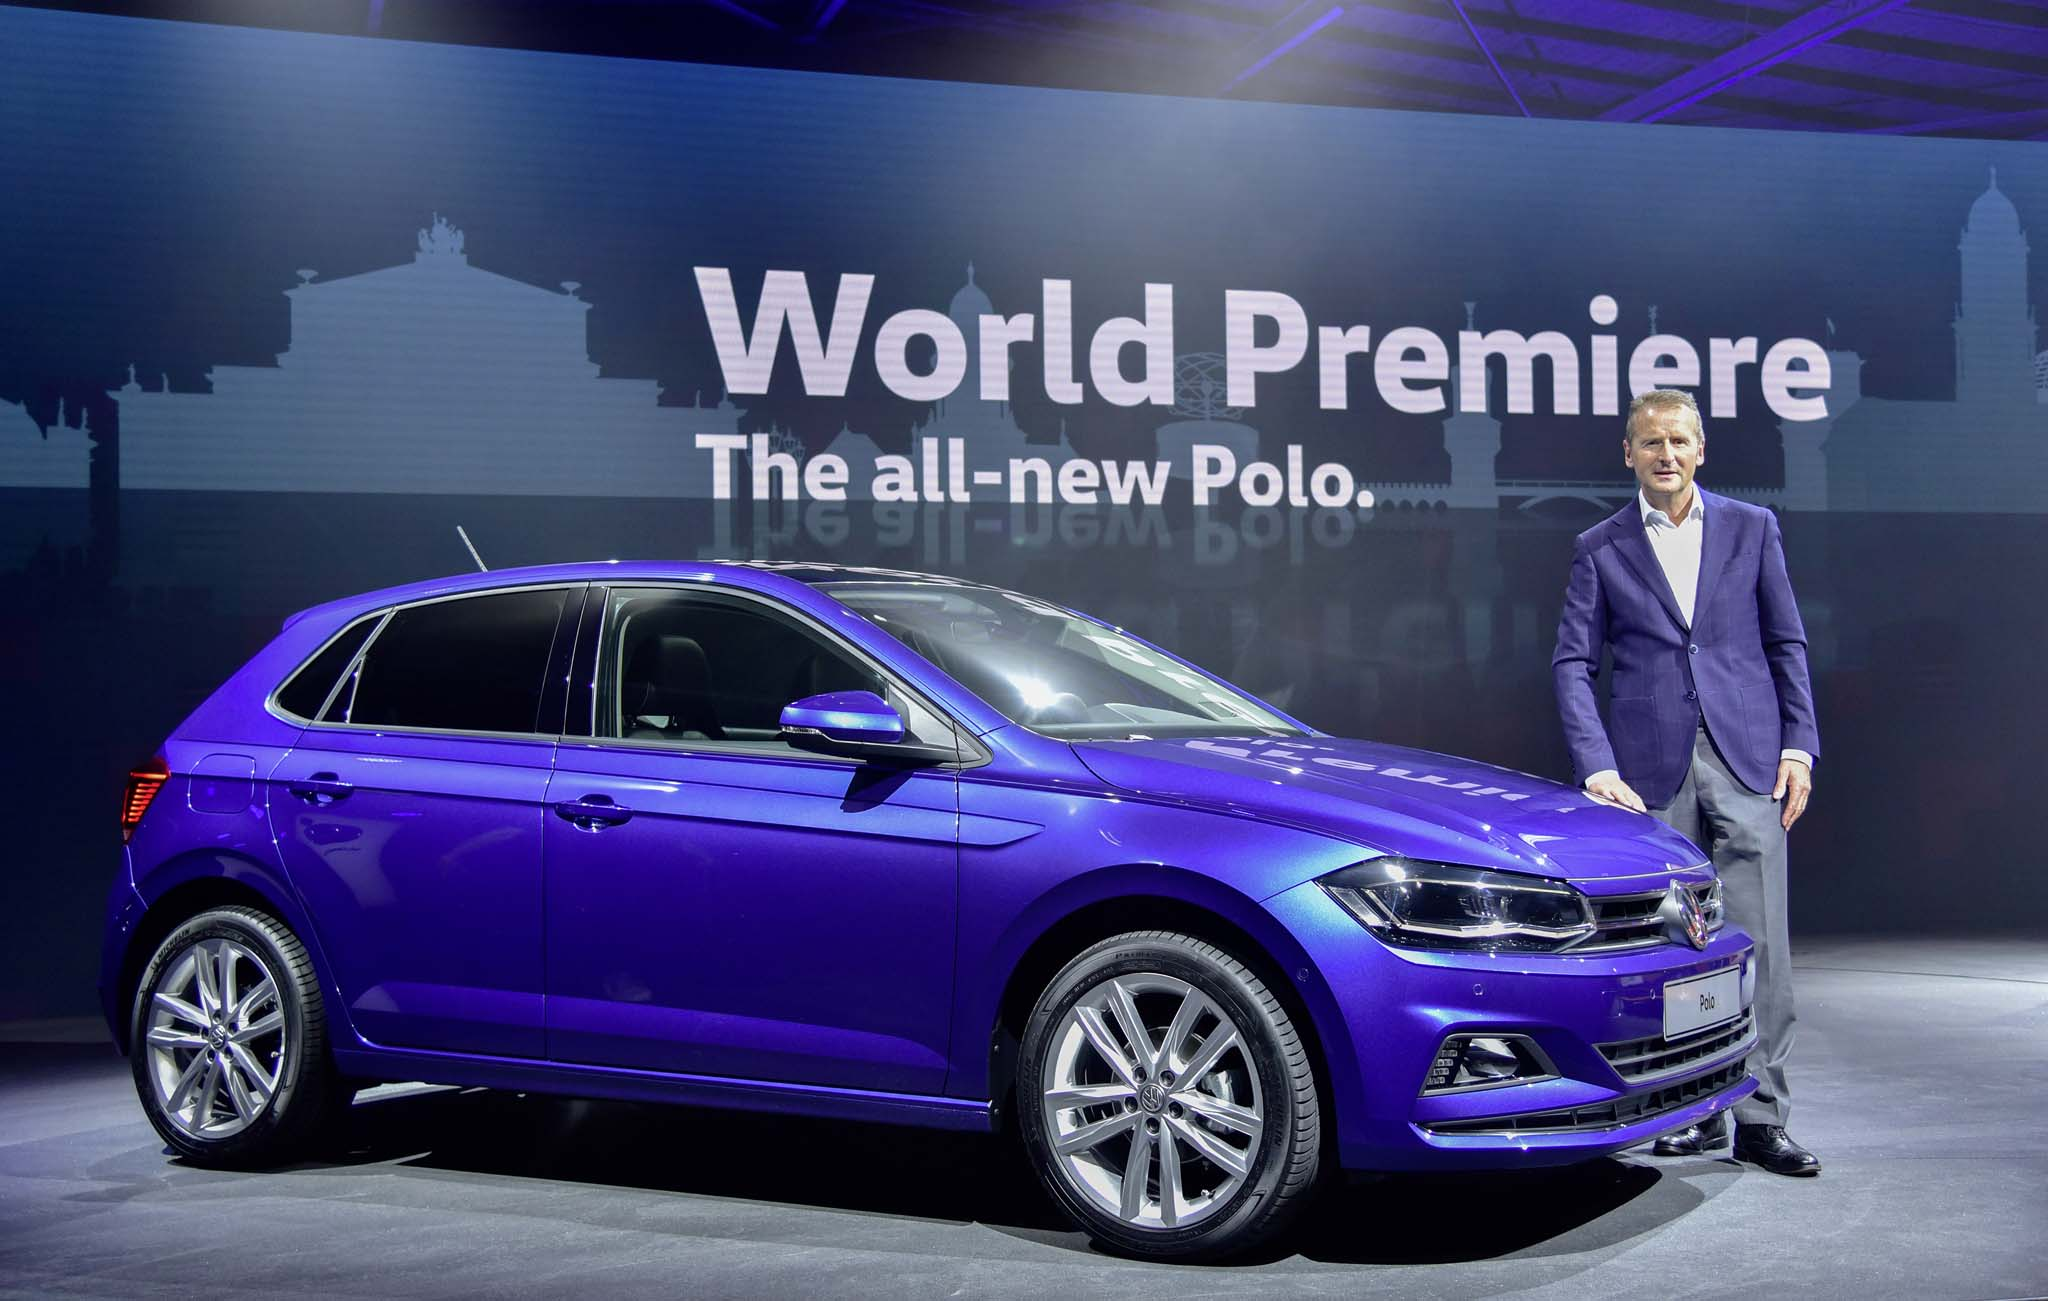 2018 Volkswagen Polo Revealed for Europe | Automobile Magazine